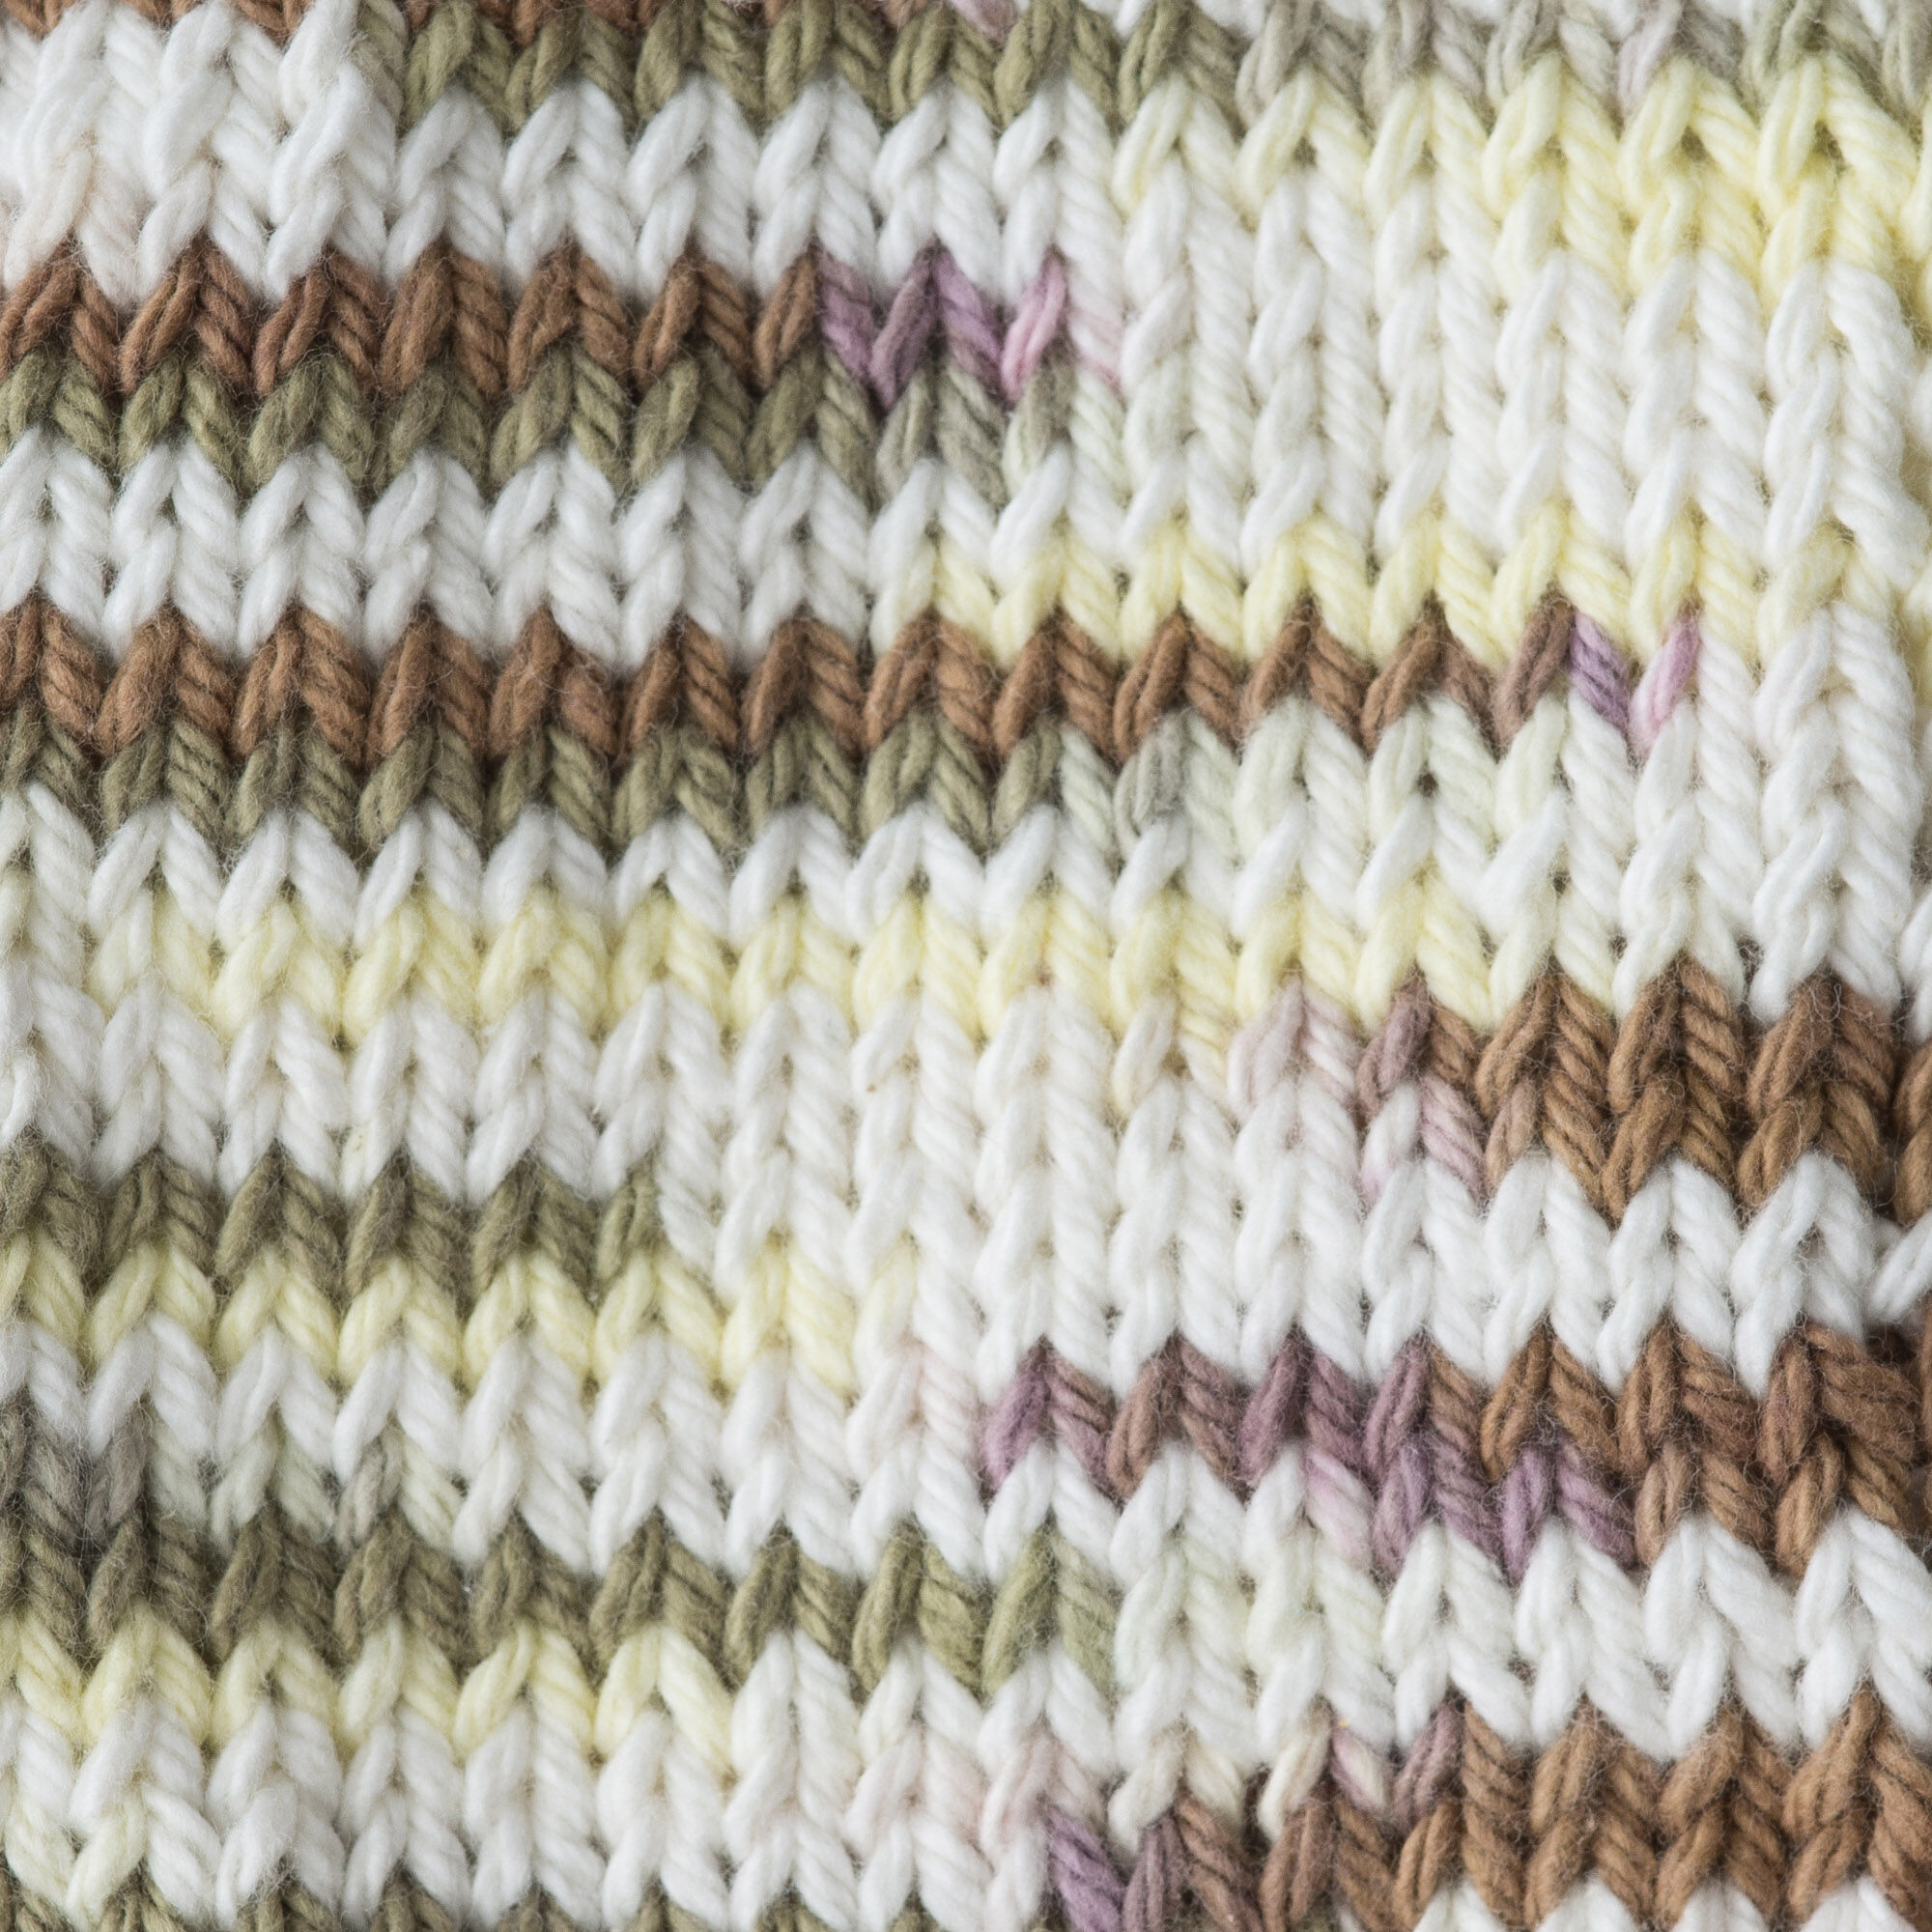 Spinrite Lily Sugar/'n Cream Yarn 102019-19007 Ombres Super Size-Wooded Moss